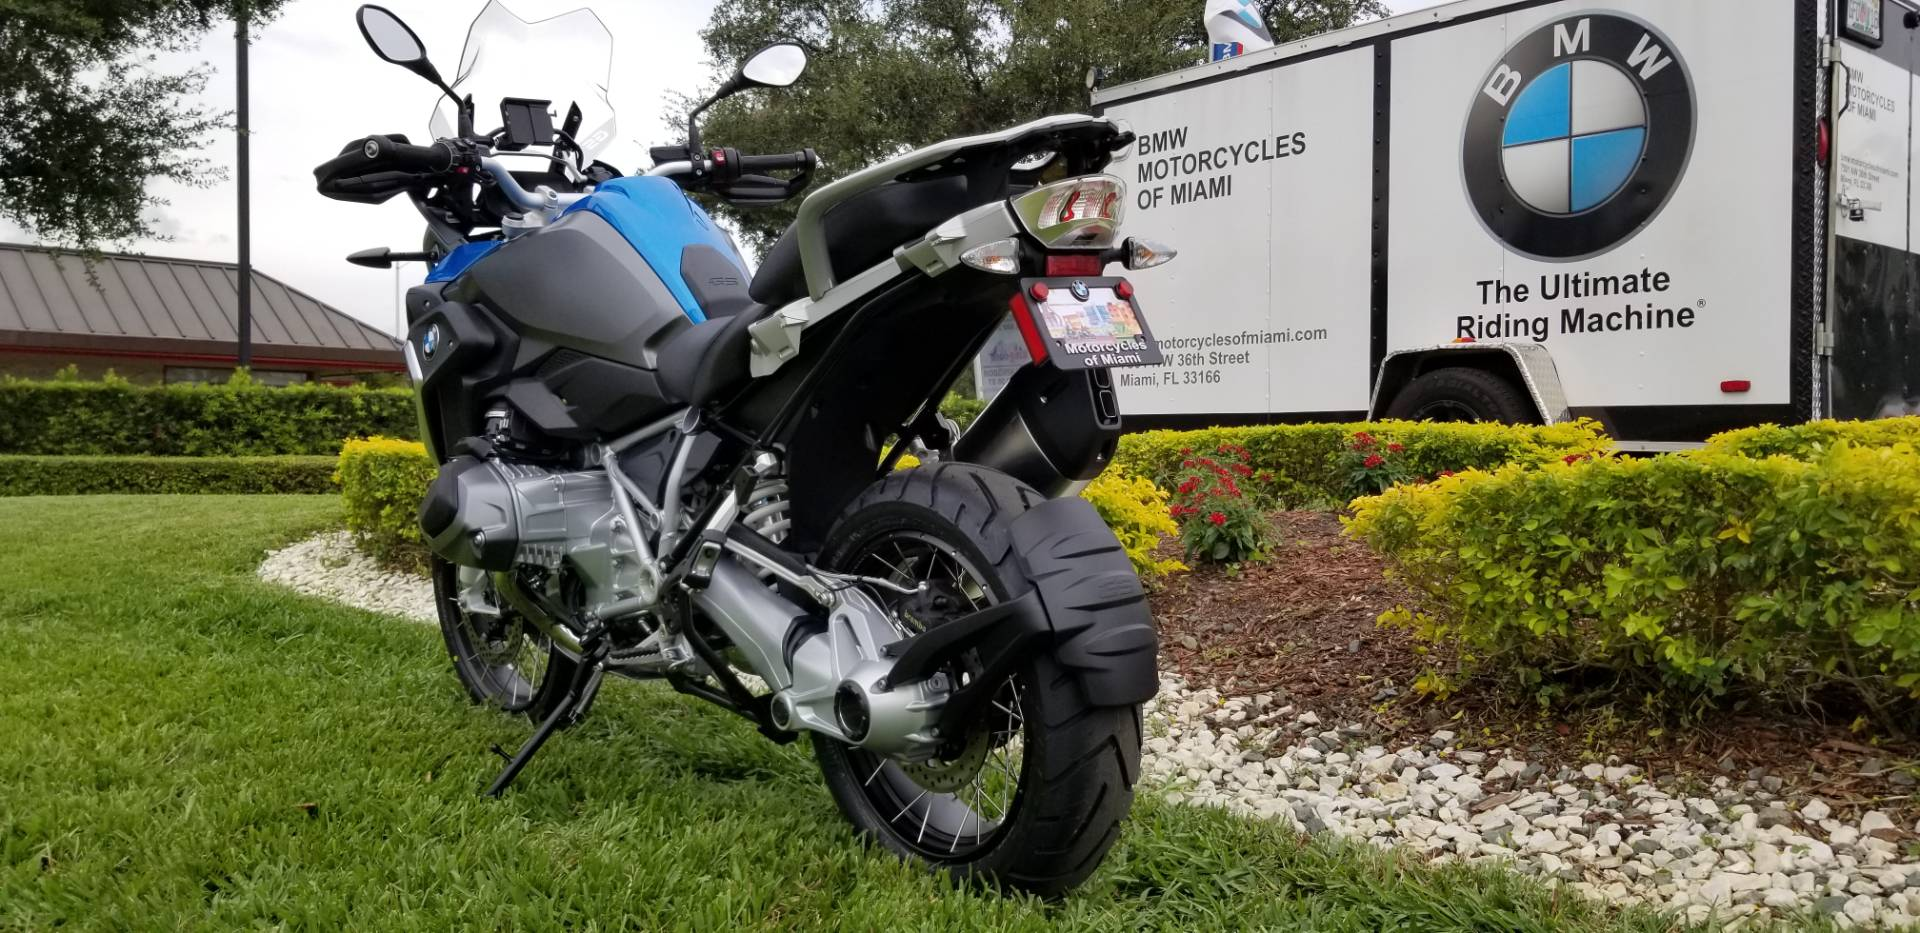 New 2019 BMW R 1250 GS for sale, BMW for sale R 1250GS, BMW Motorcycle R1250GS, new BMW 1250GS, R1250GS, BMW. BMW Motorcycles of Miami, Motorcycles of Miami - Photo 21